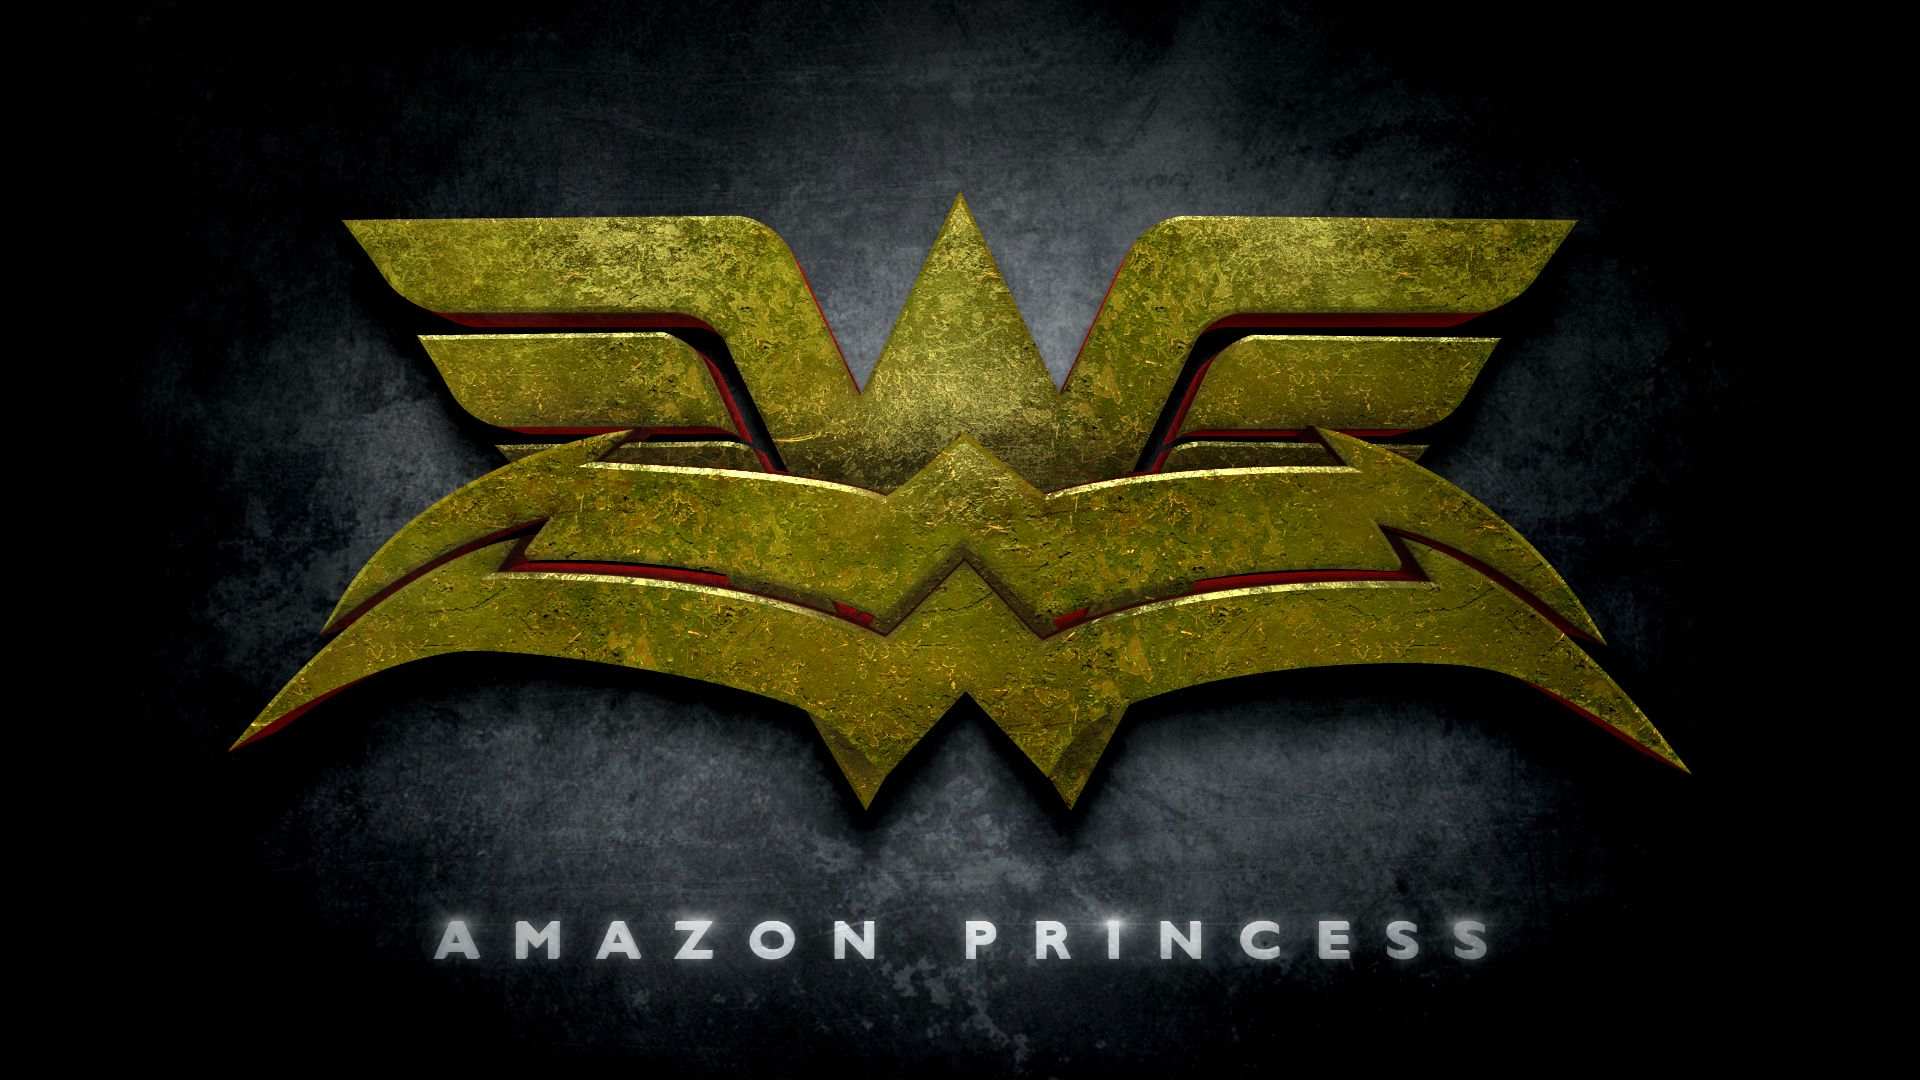 Wonder Woman Amazon Princess Logo in the Style of Man of Steel - Imgur